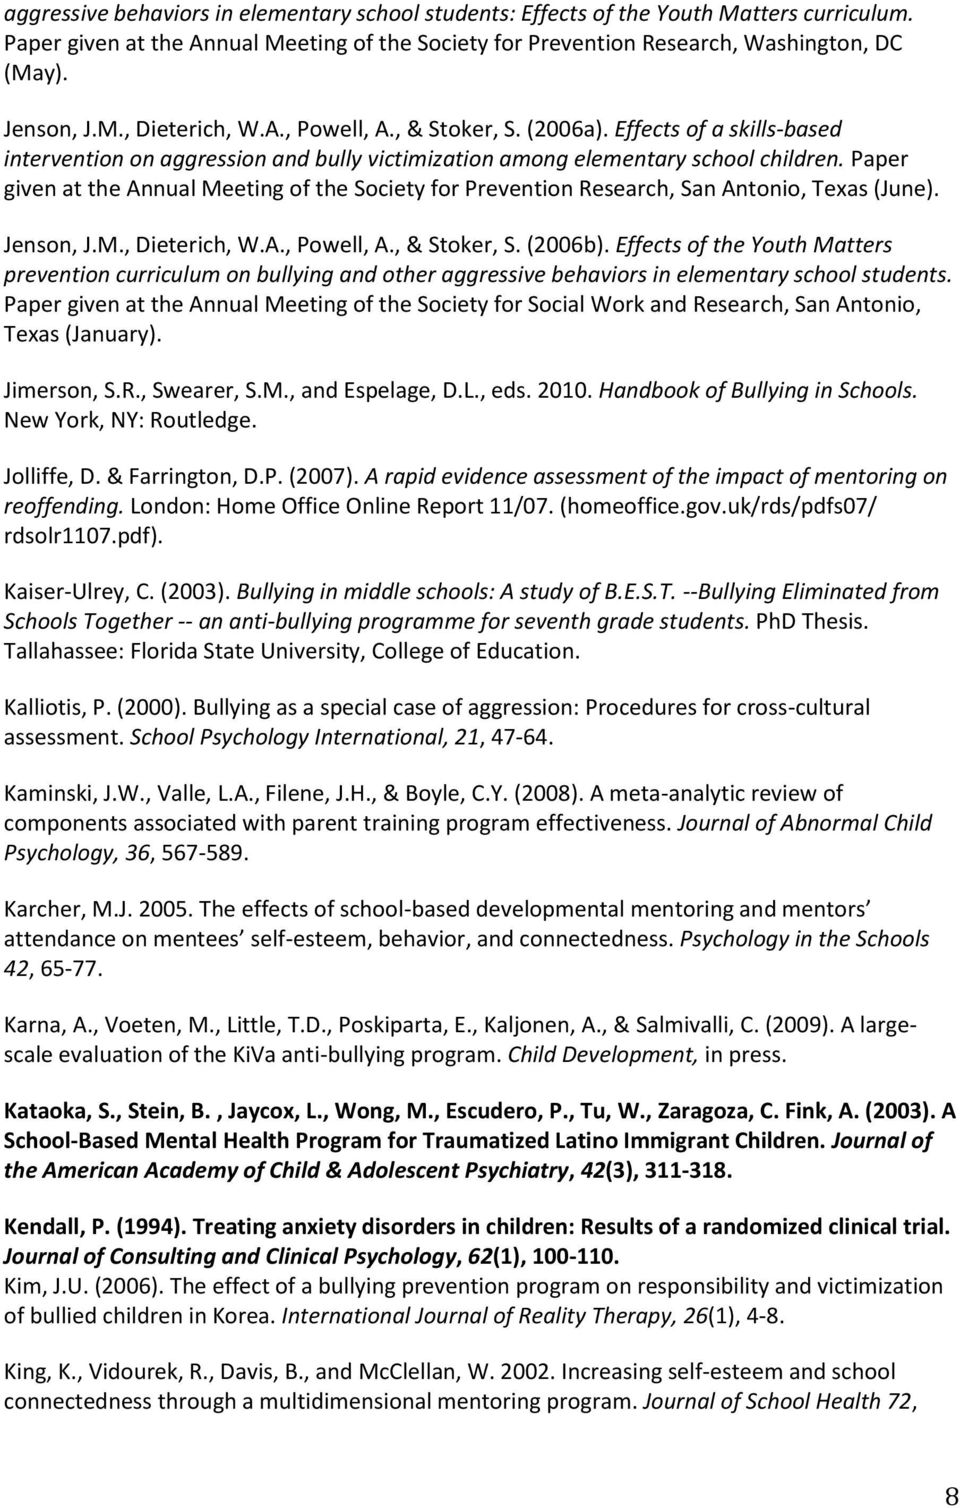 Paper given at the Annual Meeting of the Society for Prevention Research, San Antonio, Texas (June). Jenson, J.M., Dieterich, W.A., Powell, A., & Stoker, S. (2006b).